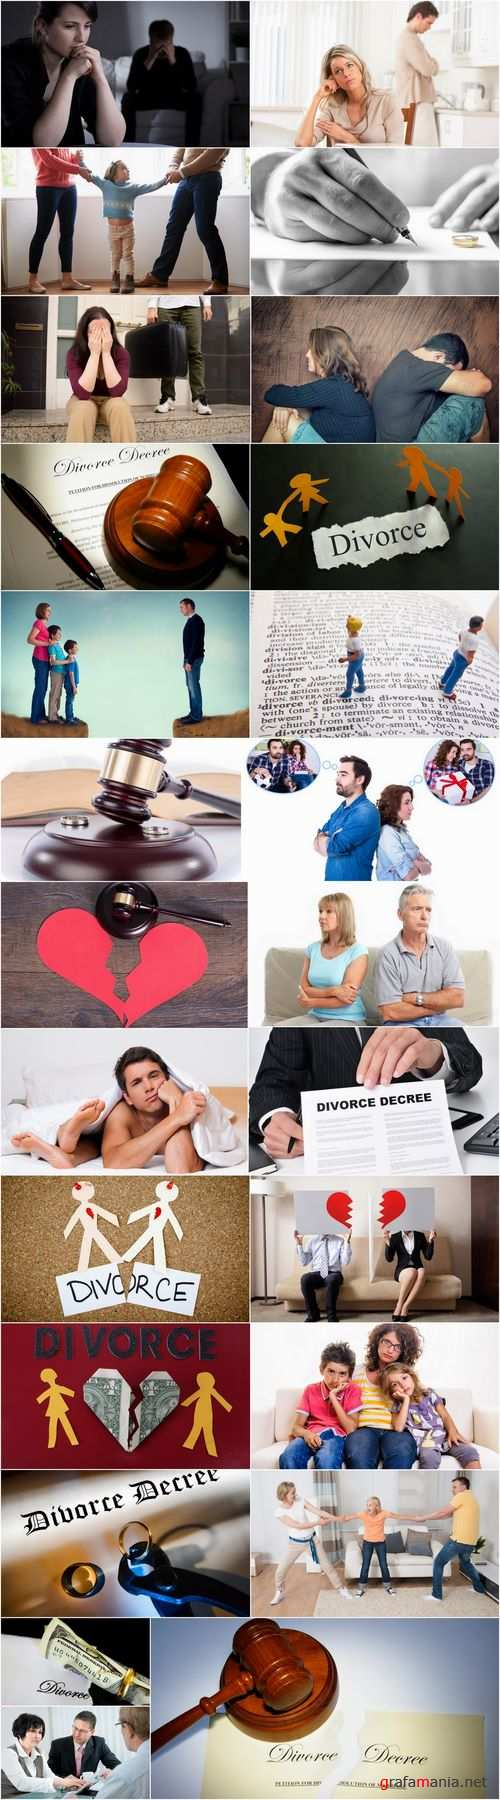 Divorce frustration woman man quarrel 25 HQ Jpeg